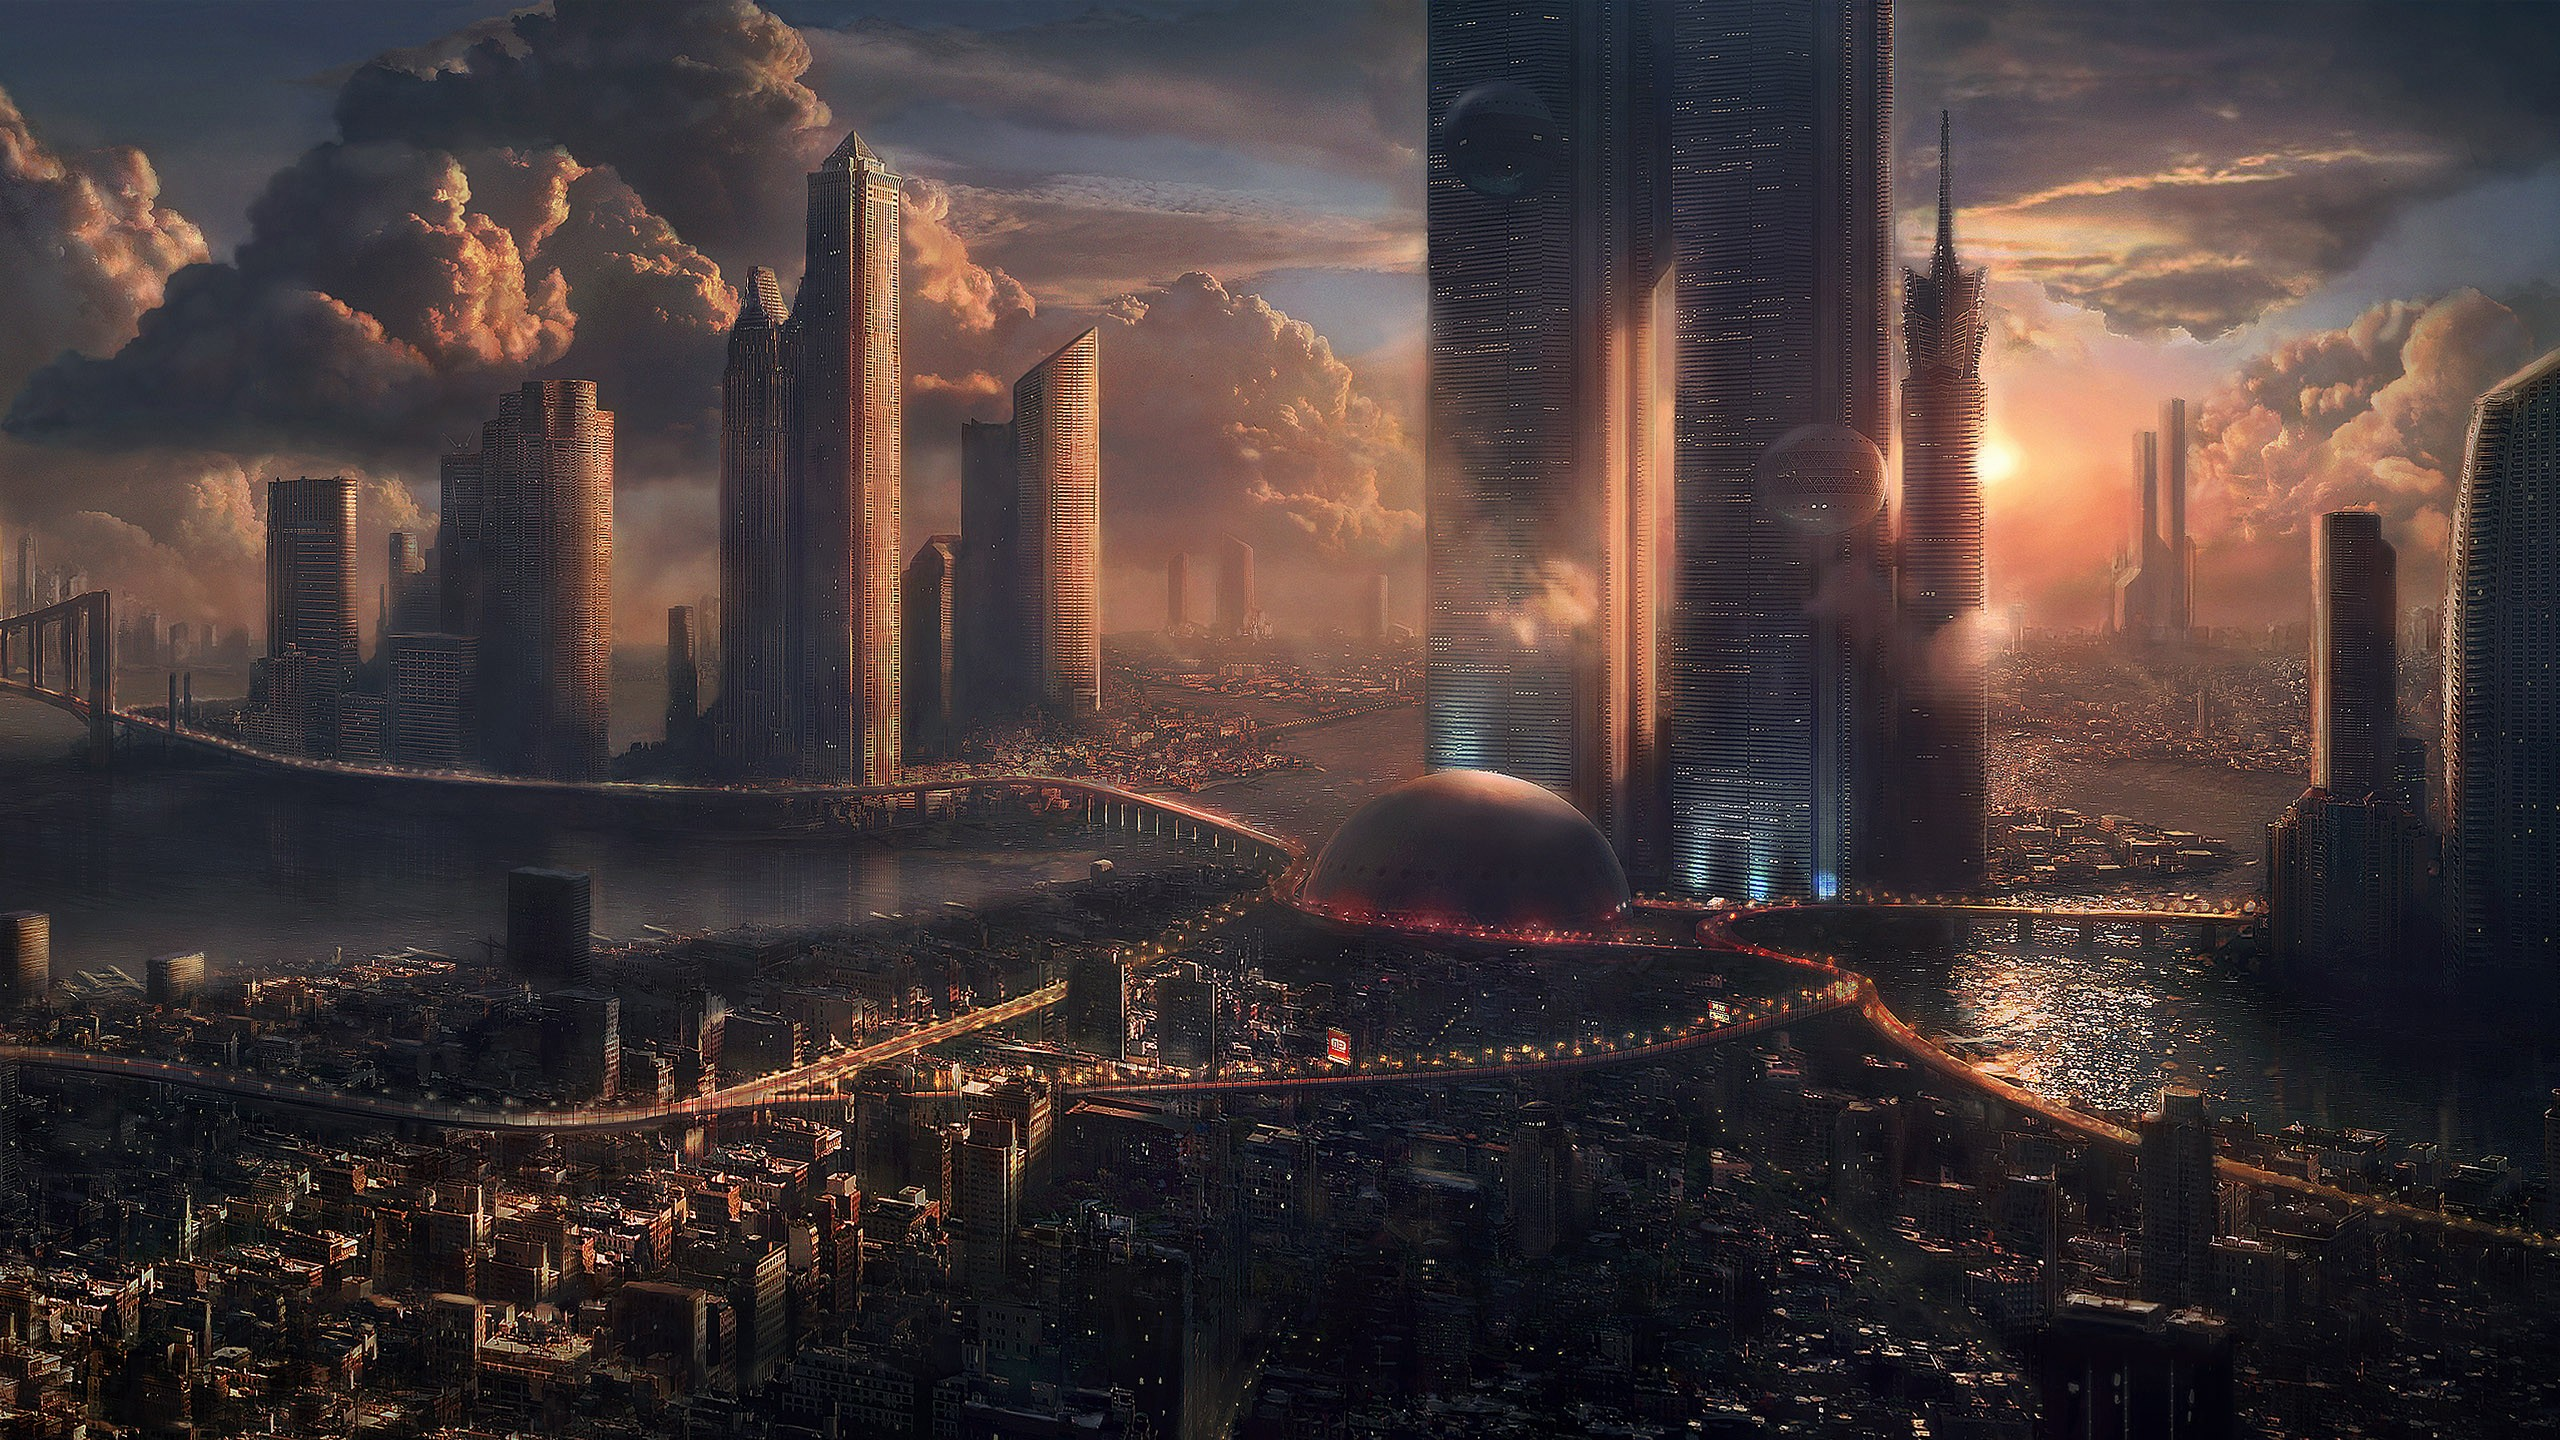 General 2560x1440 artwork cityscape futuristic futuristic city science fiction sky clouds digital art fantasy city 3D